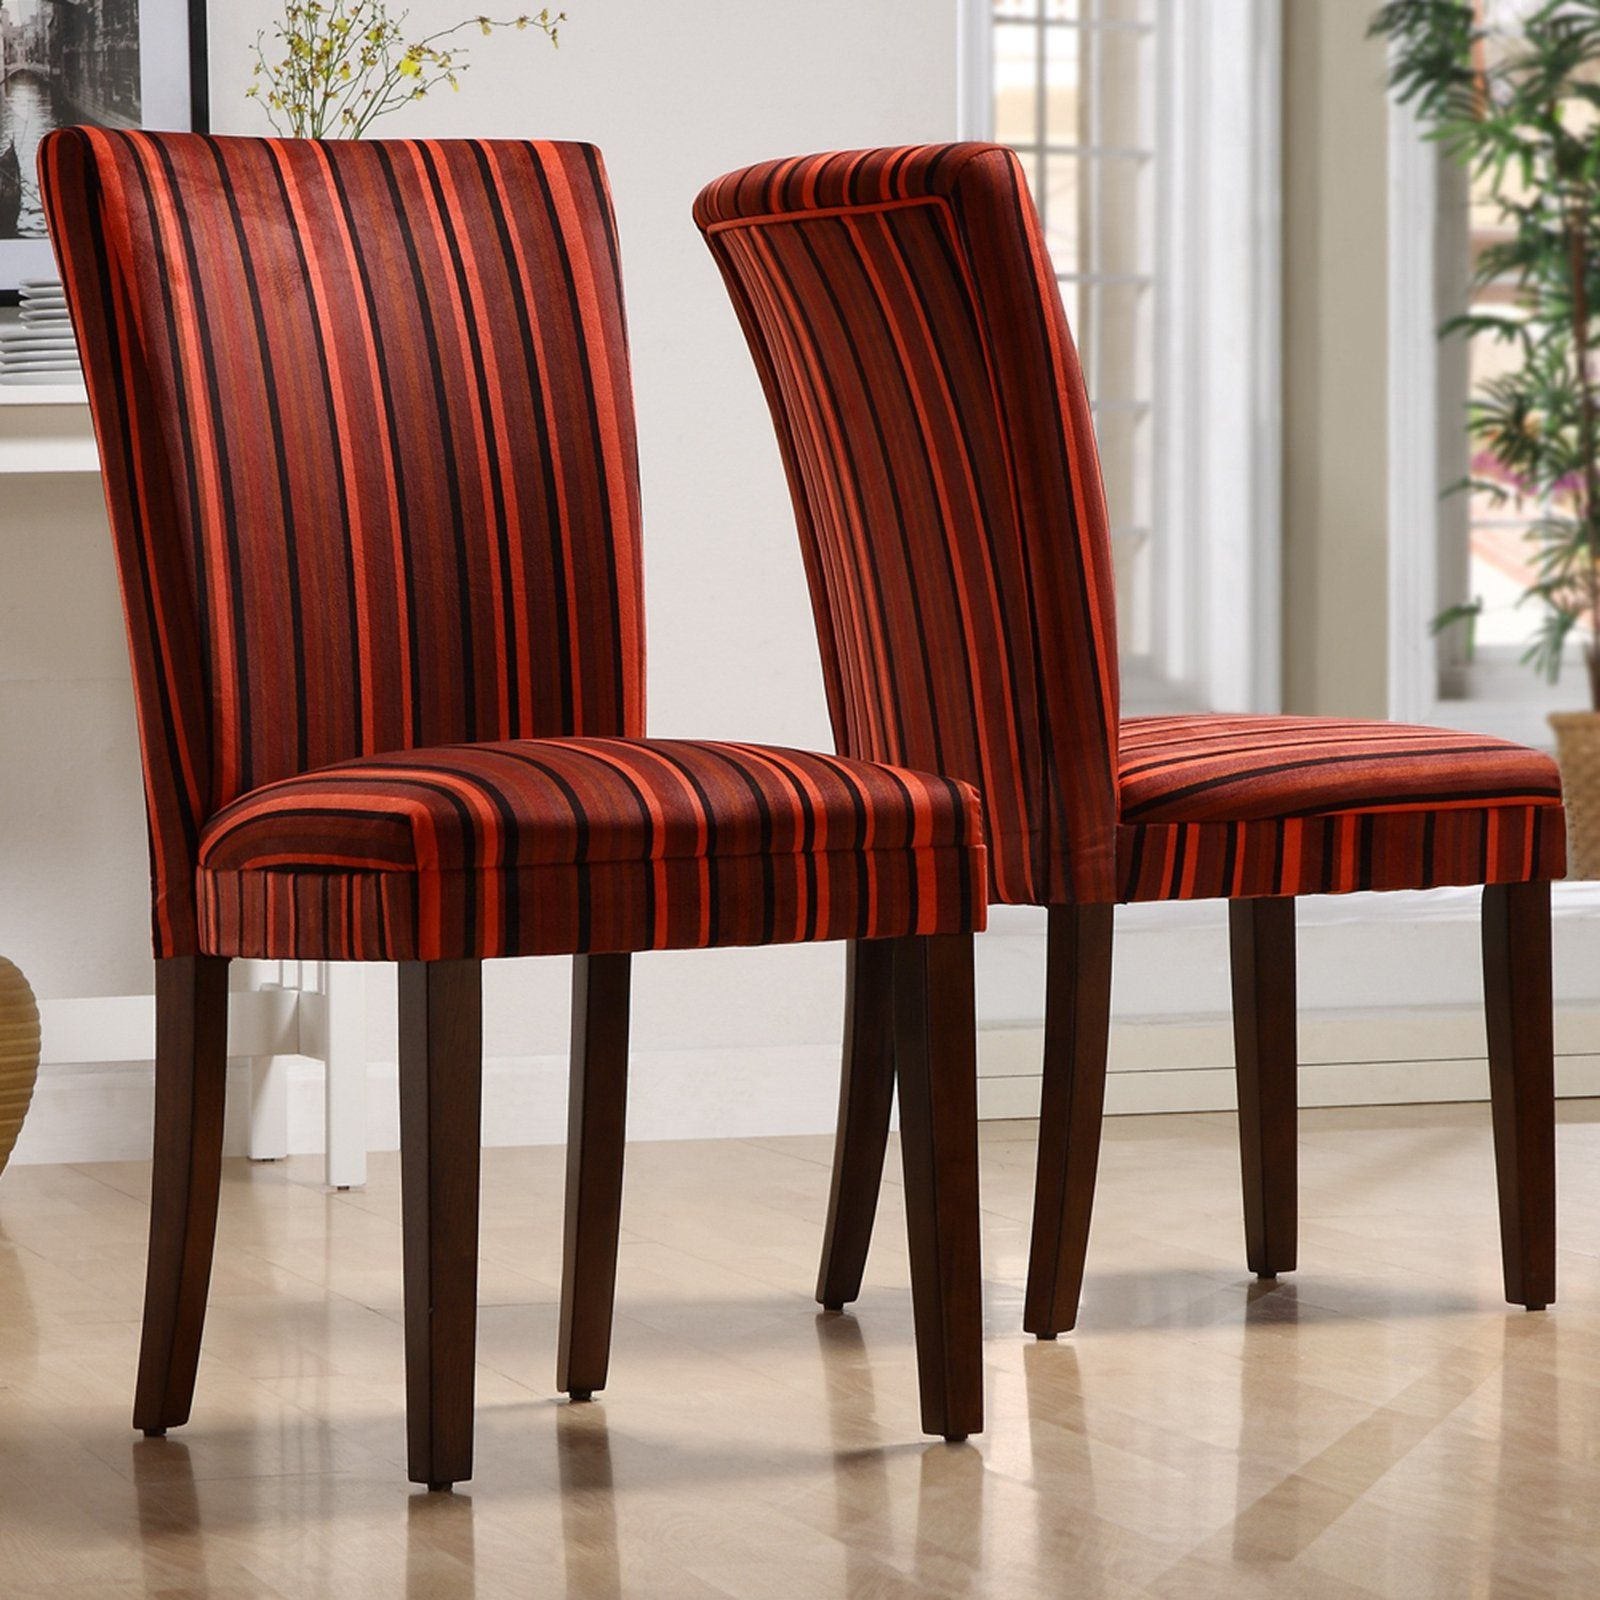 Red Dining Room Furniture: Homelegance Royal Red Striped Design Fabric Parson Chairs